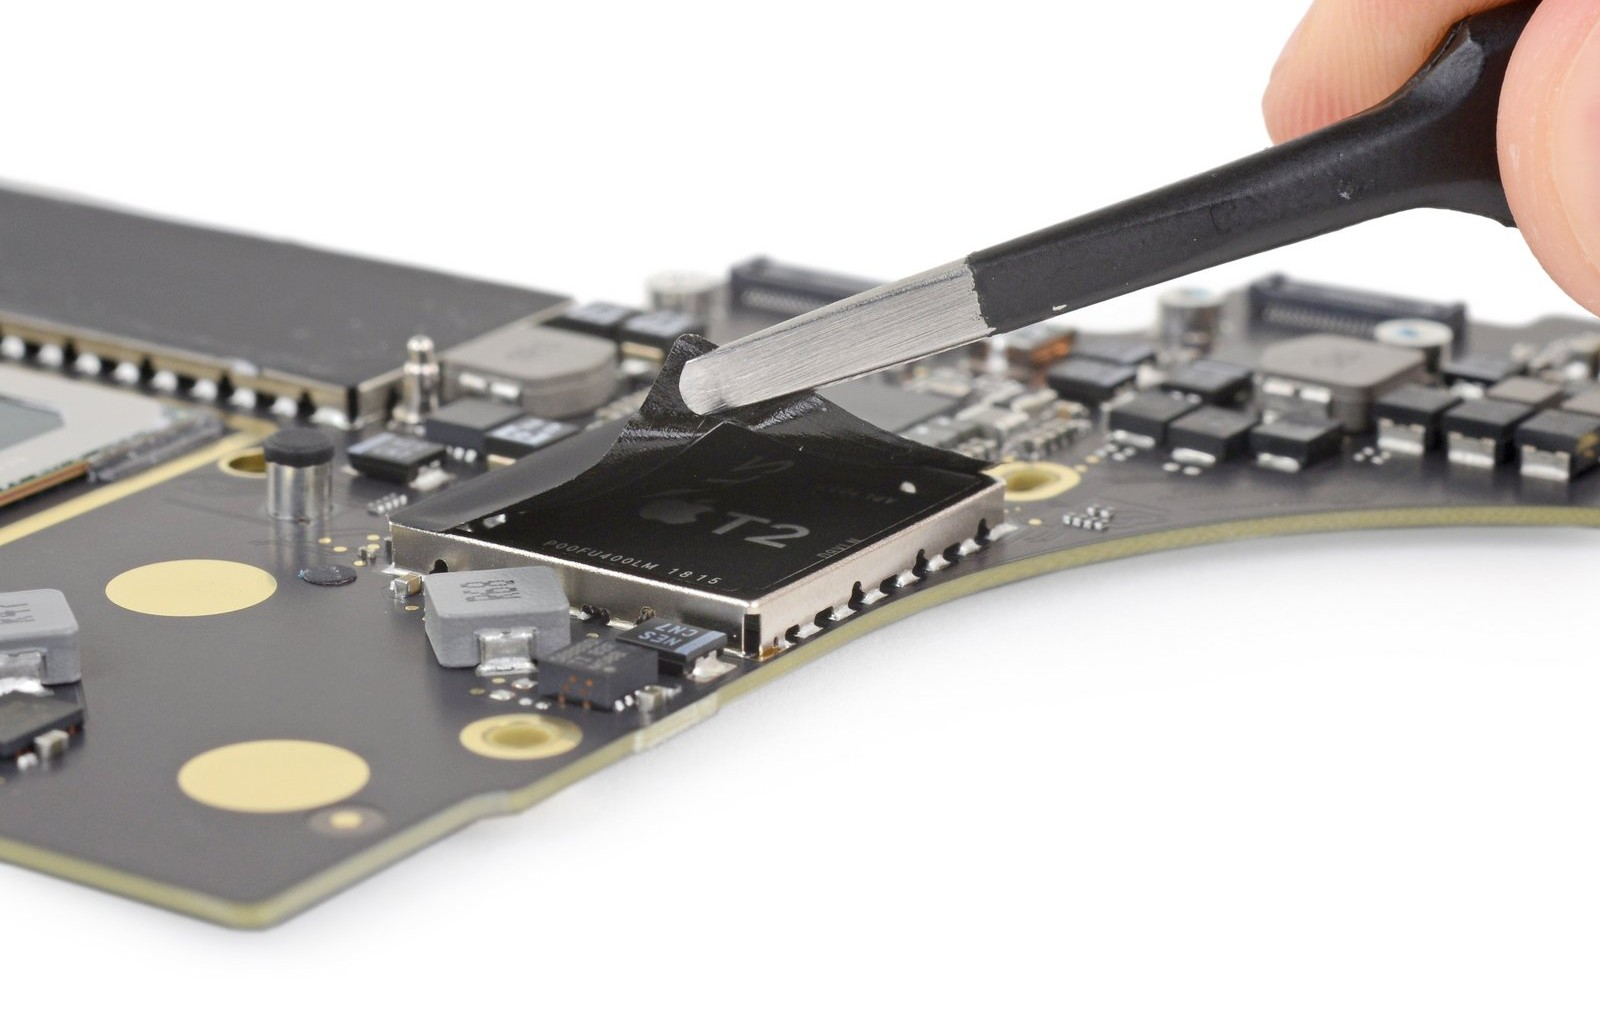 A pair of tweezers uncovering the T2 security chip on a MacBook Pro logic board.